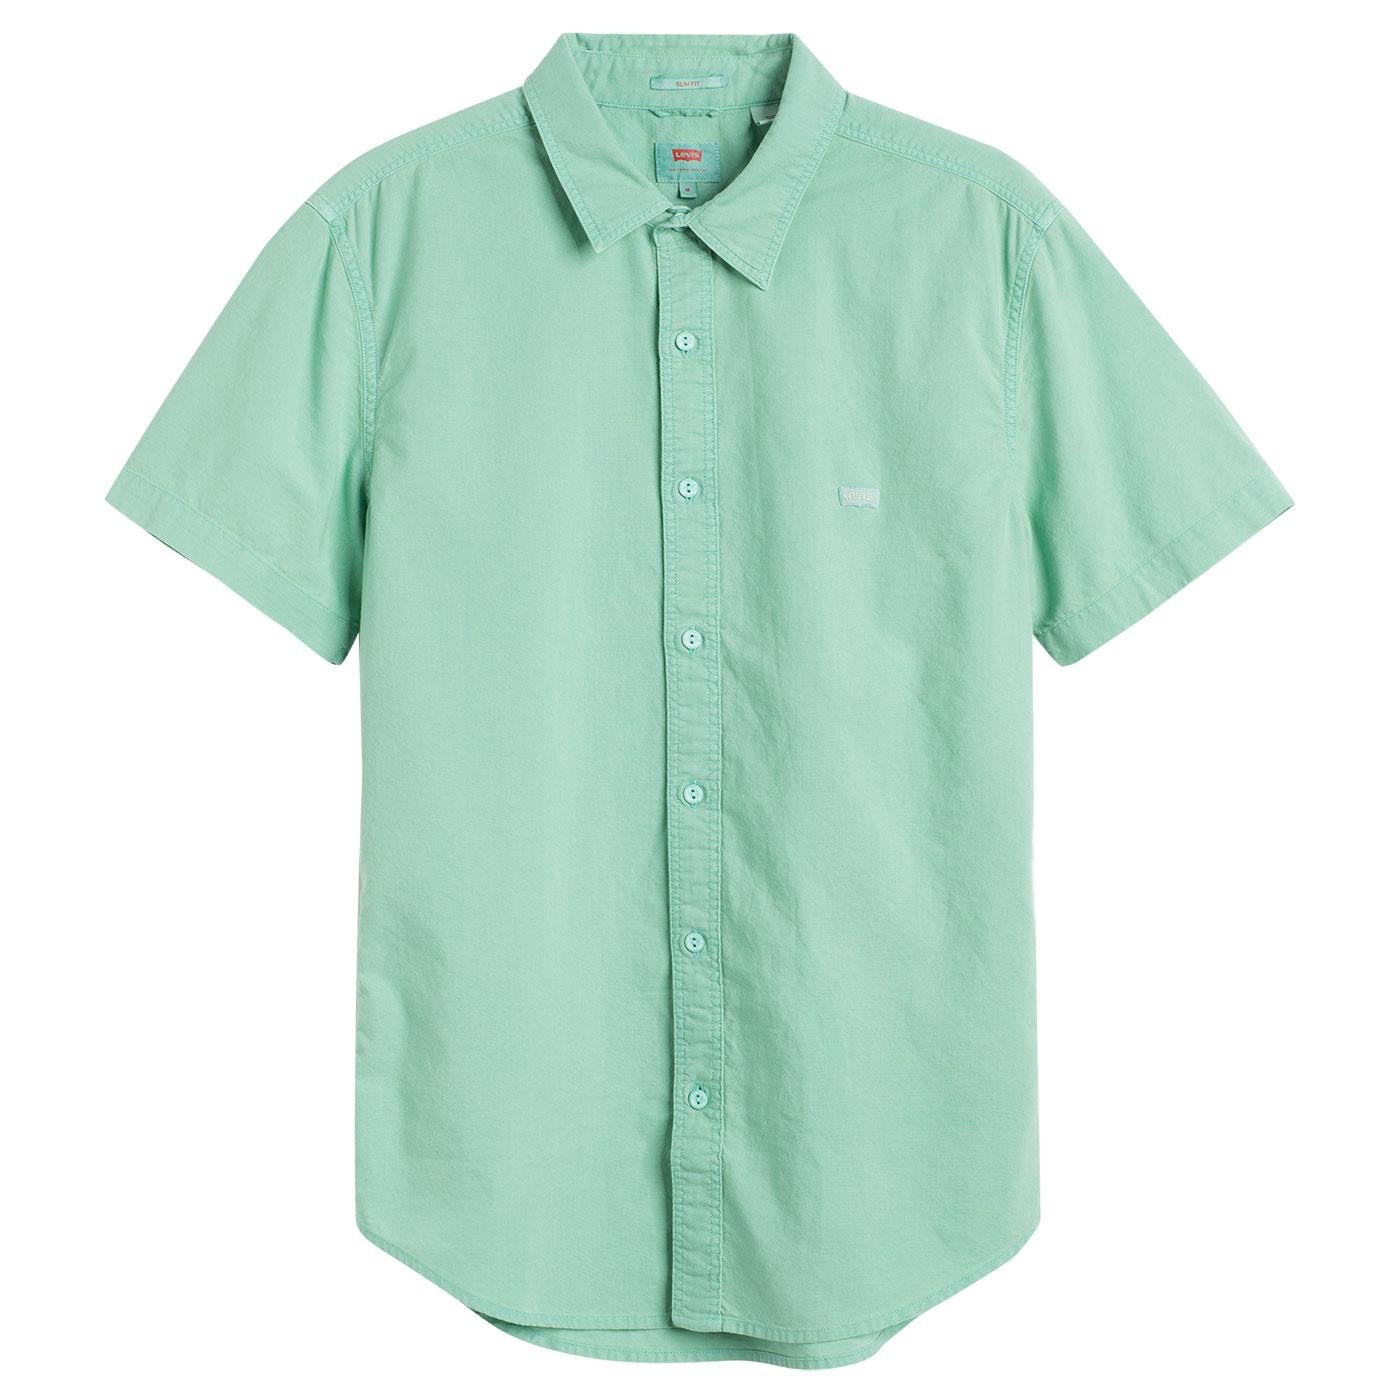 LEVI'S SS Battery HM Retro shirt (Creme de Menthe)